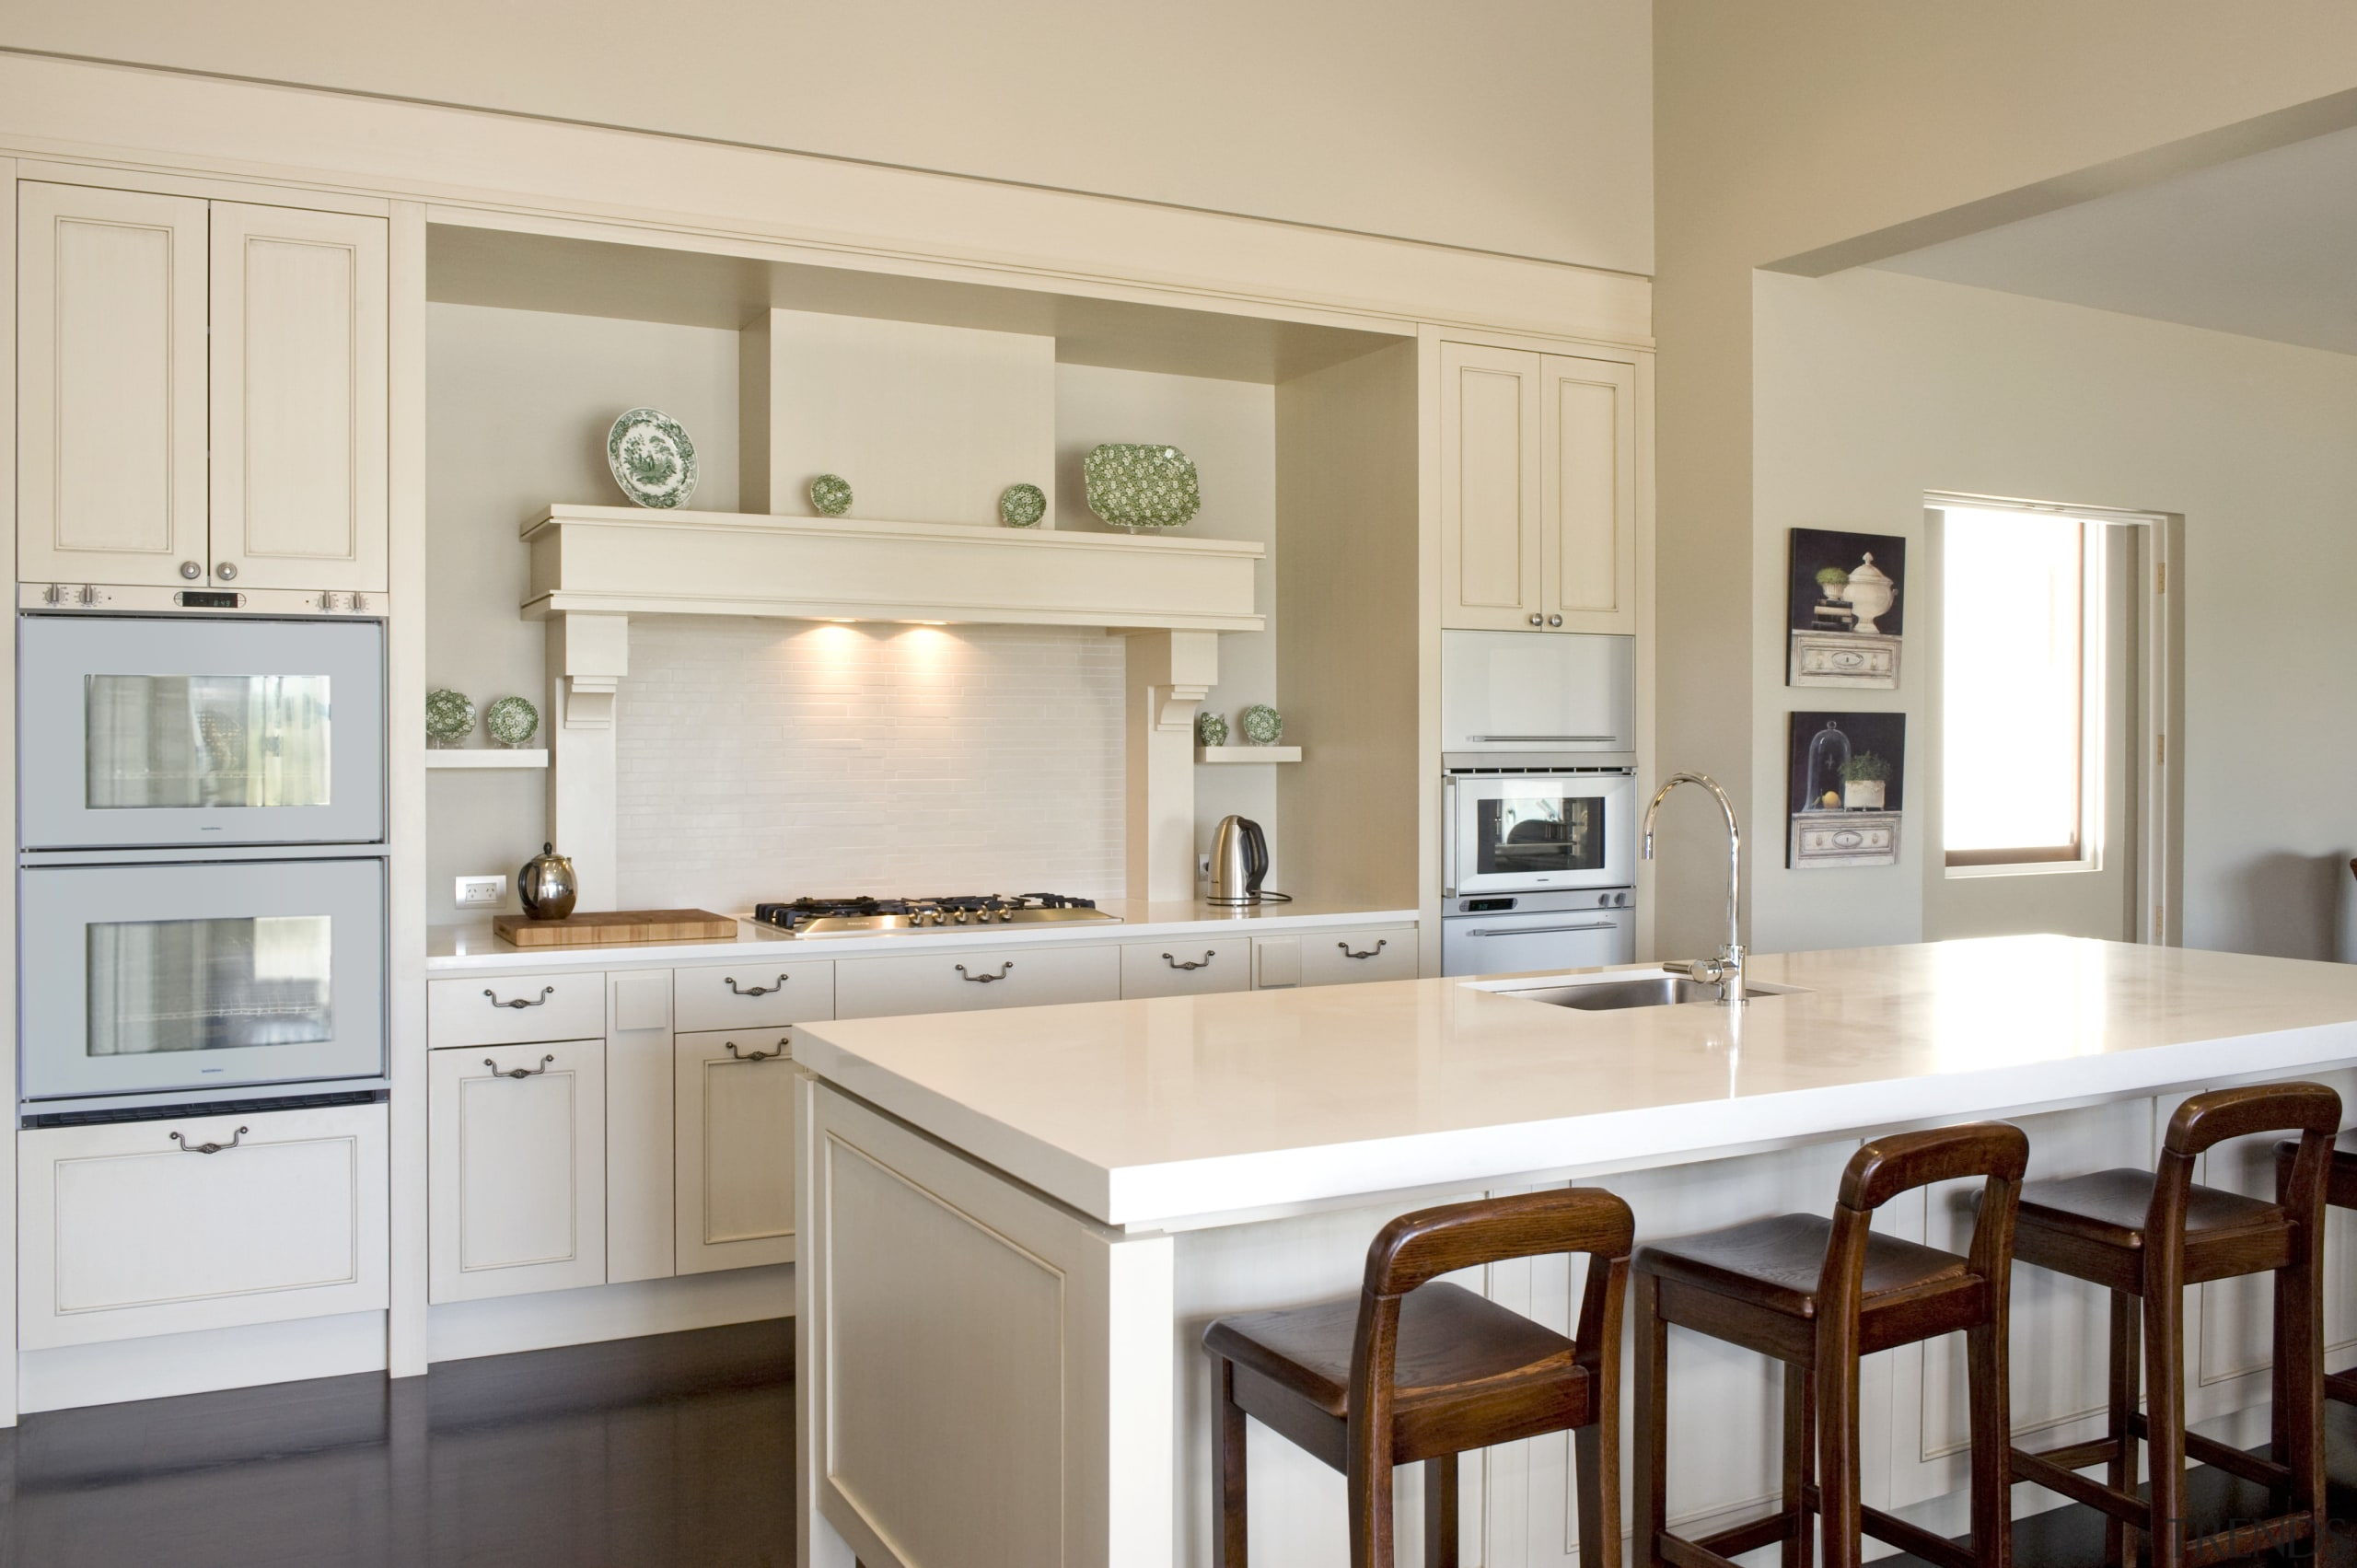 Image of the kitchen designed by Fyfe kitchens cabinetry, countertop, cuisine classique, home, interior design, kitchen, real estate, room, gray